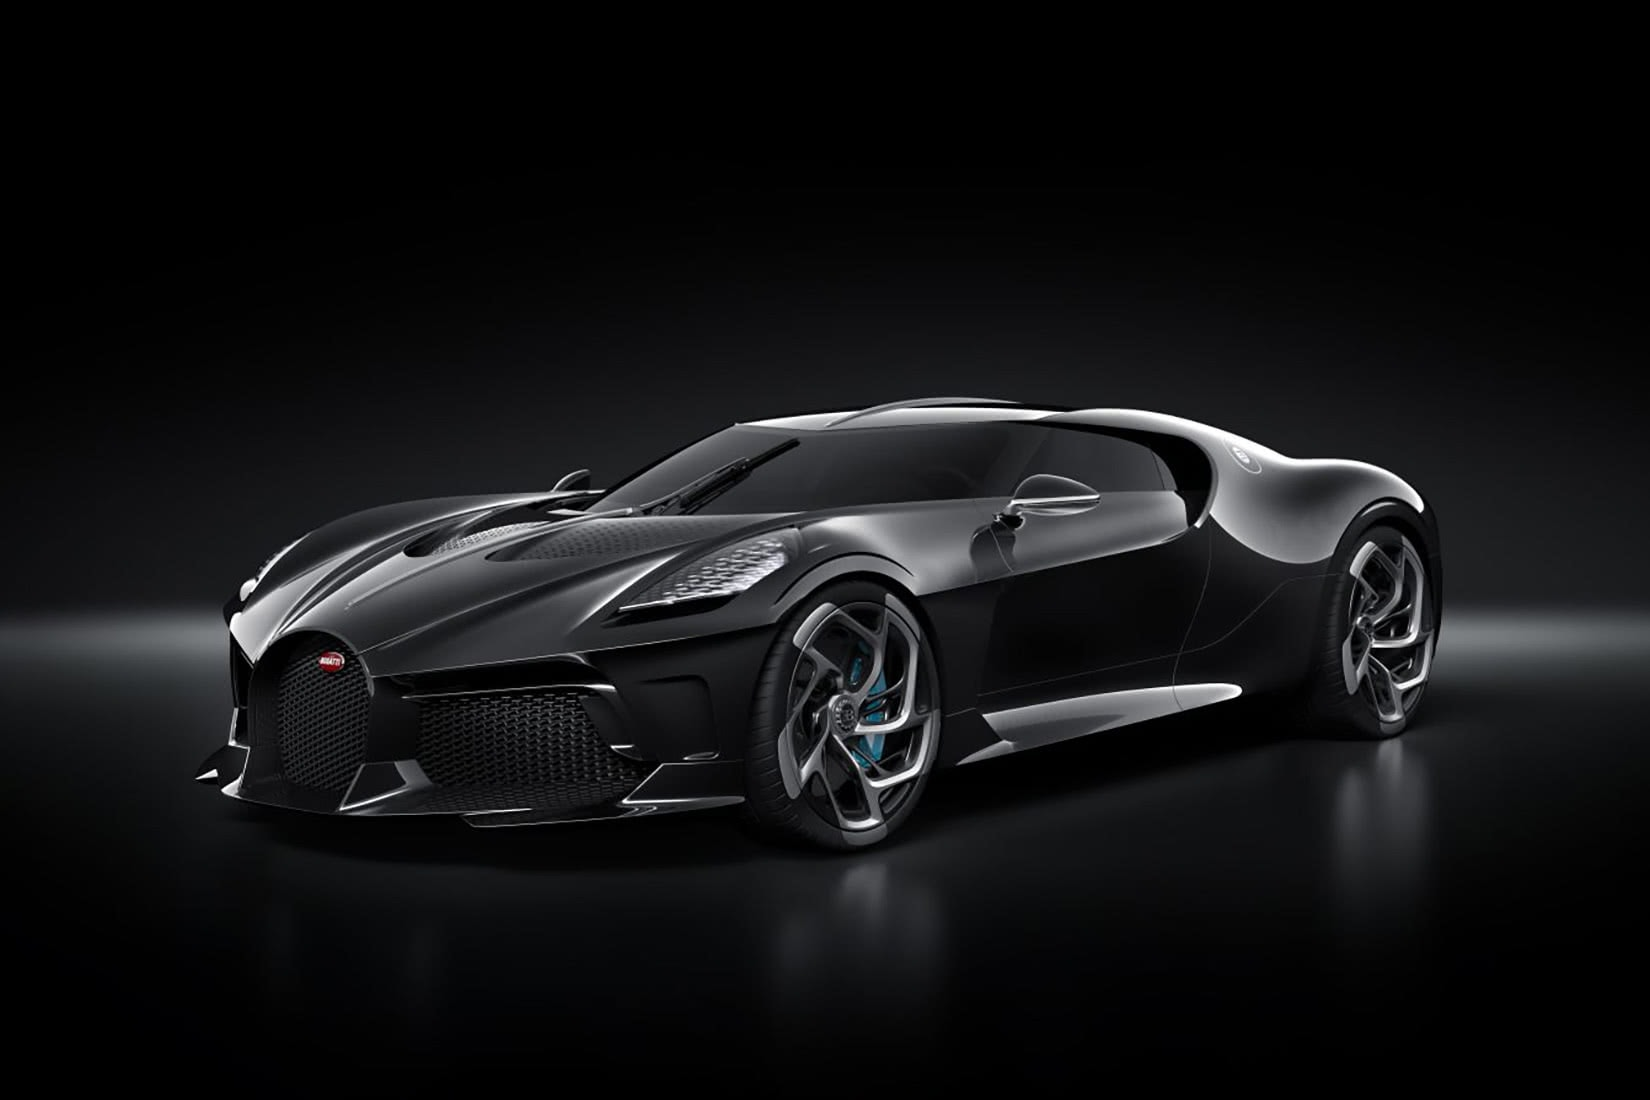 most expensive cars 2021 Bugatti La Voiture Noire - Luxe Digital